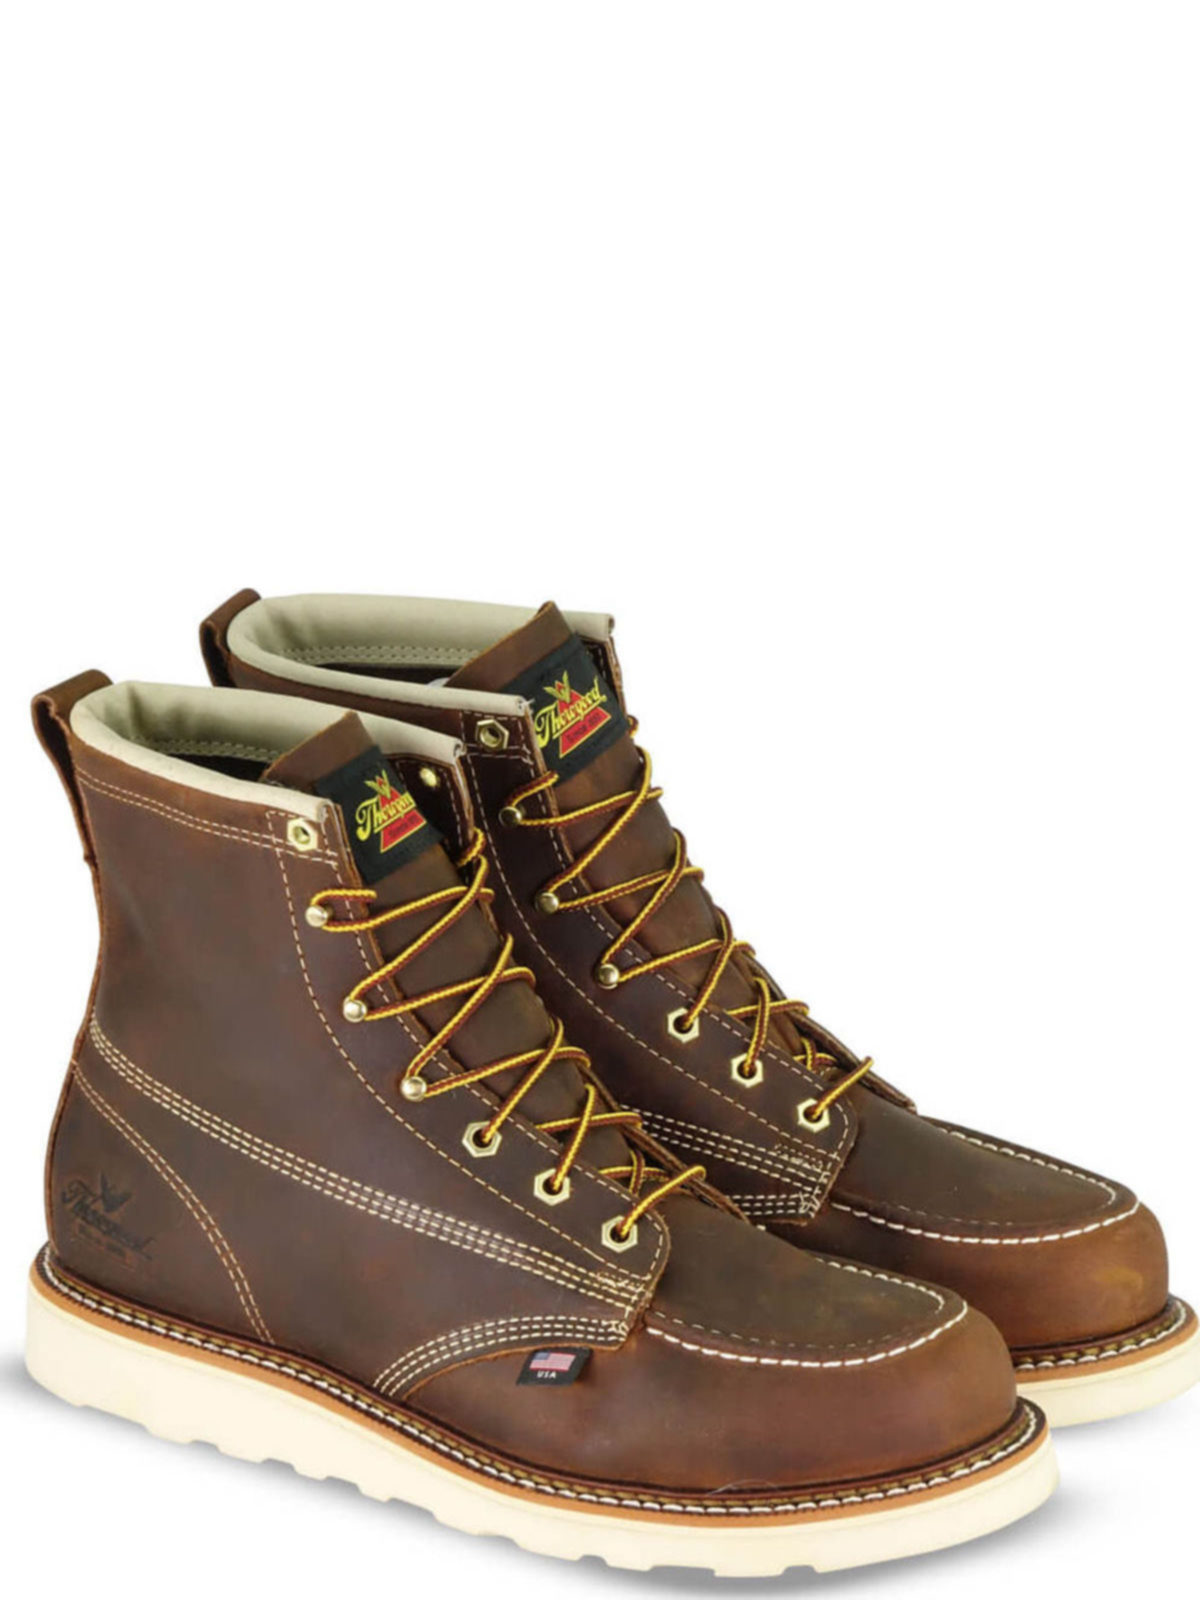 Bootamerica Thorogood Mens 6 Quot Moc Non Safety Toe Work